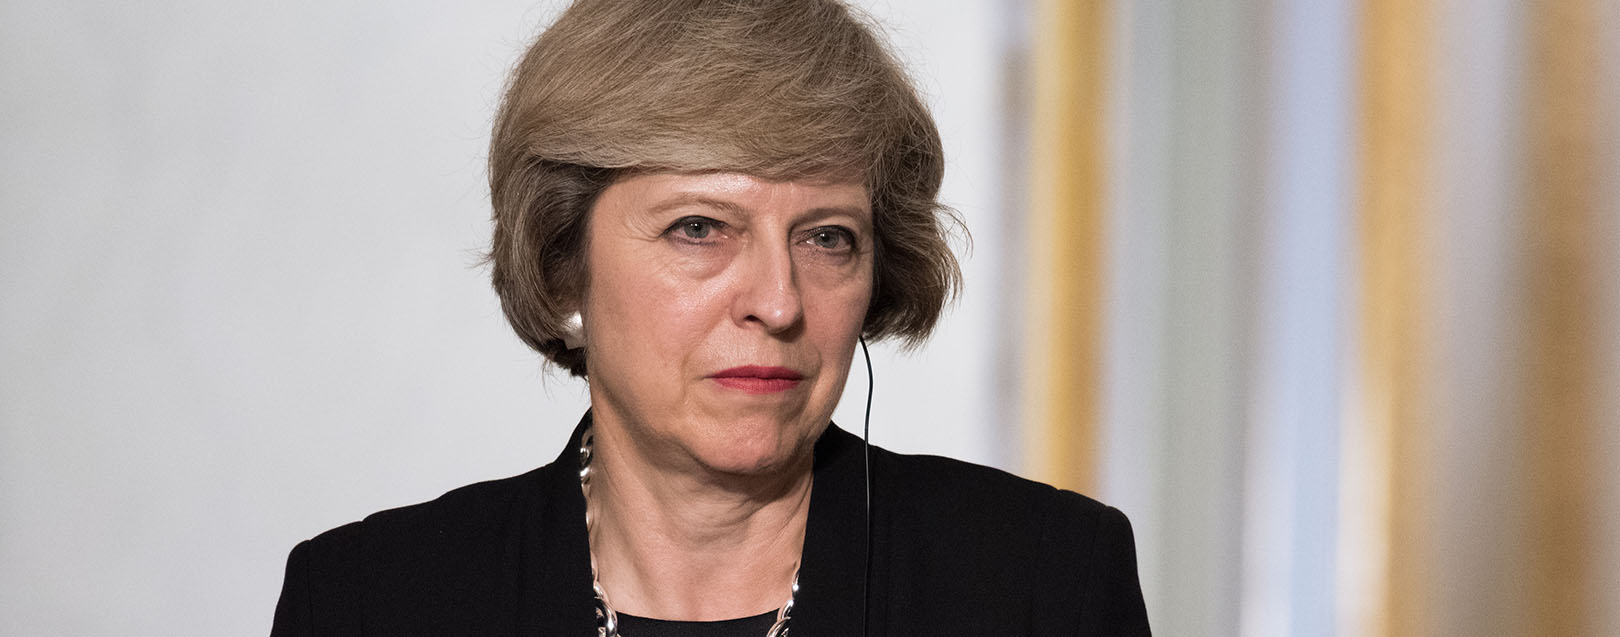 Theresa May likely to opt for 'hard Brexit'